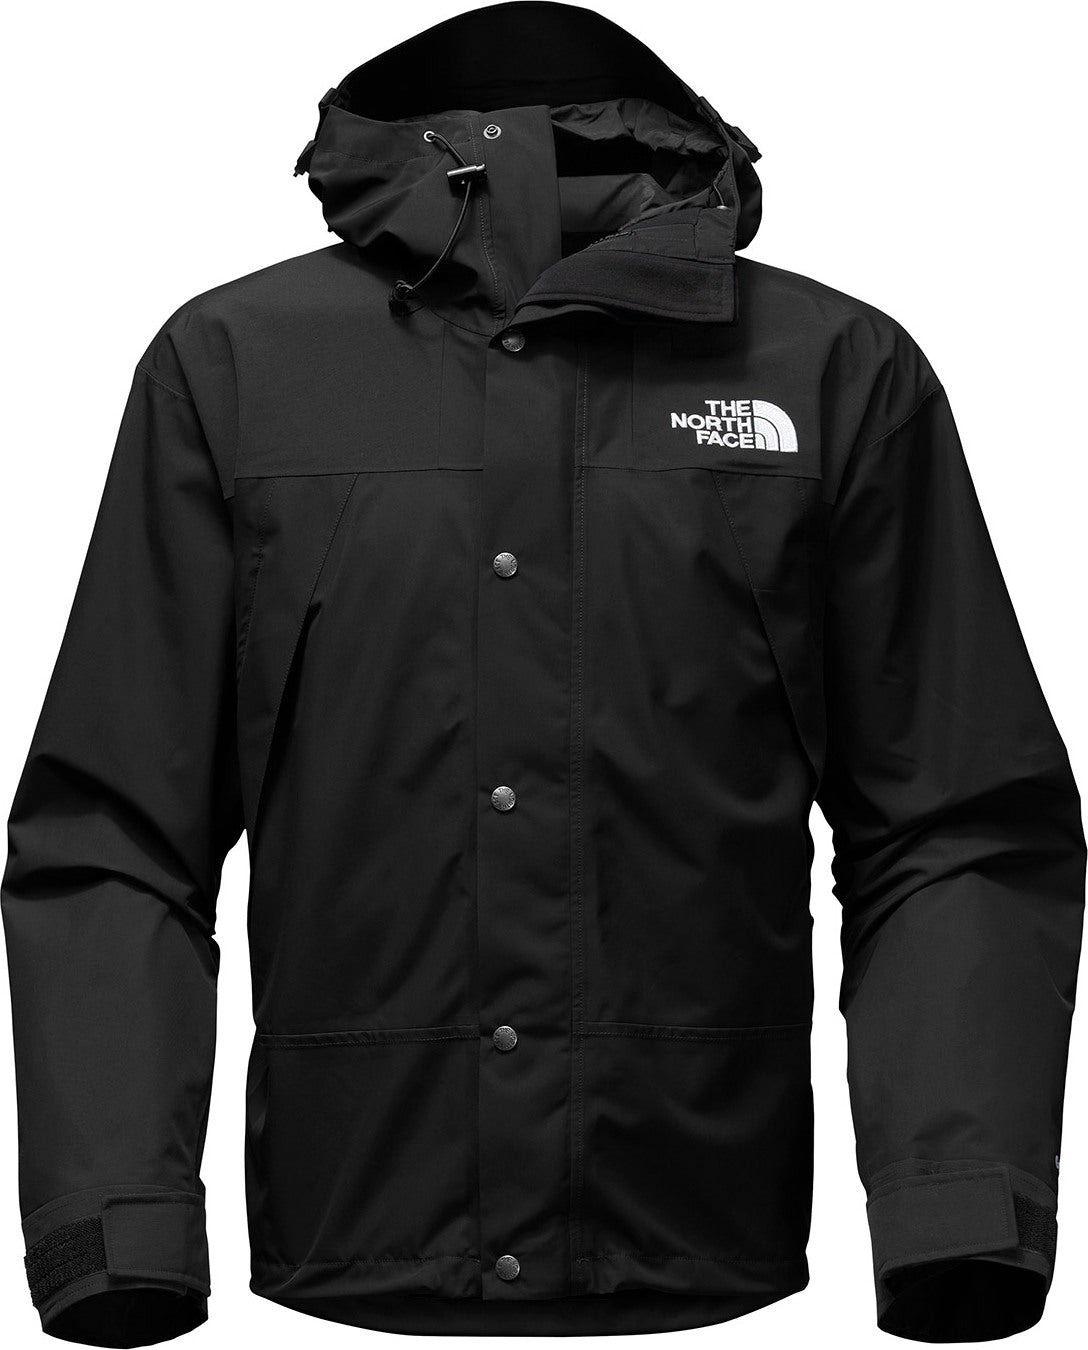 48e5b7a72 new arrivals north face all mountain jacket c3302 23b18